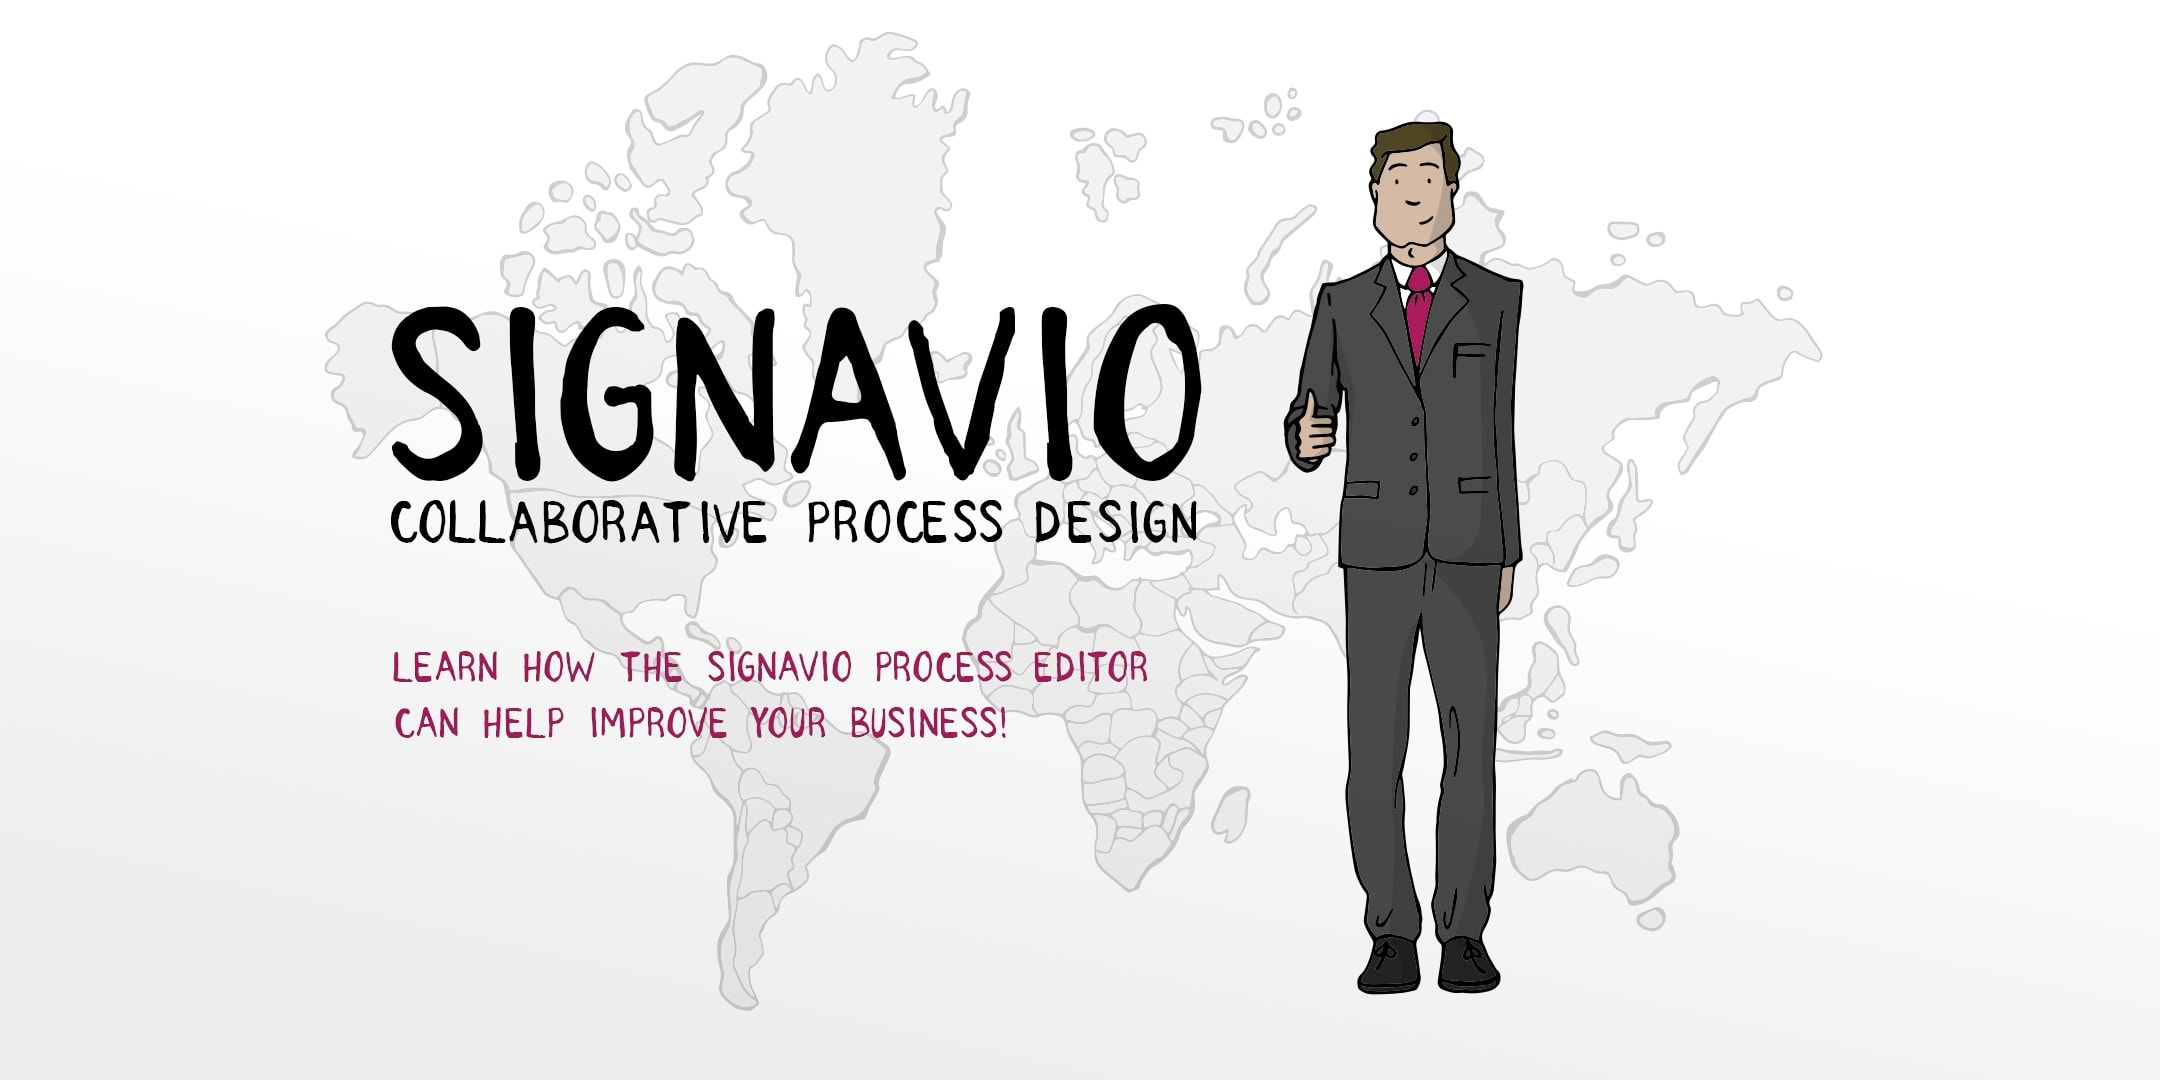 Signavio introduction video - Learn how the Signavio Process Editor can help improve your business!